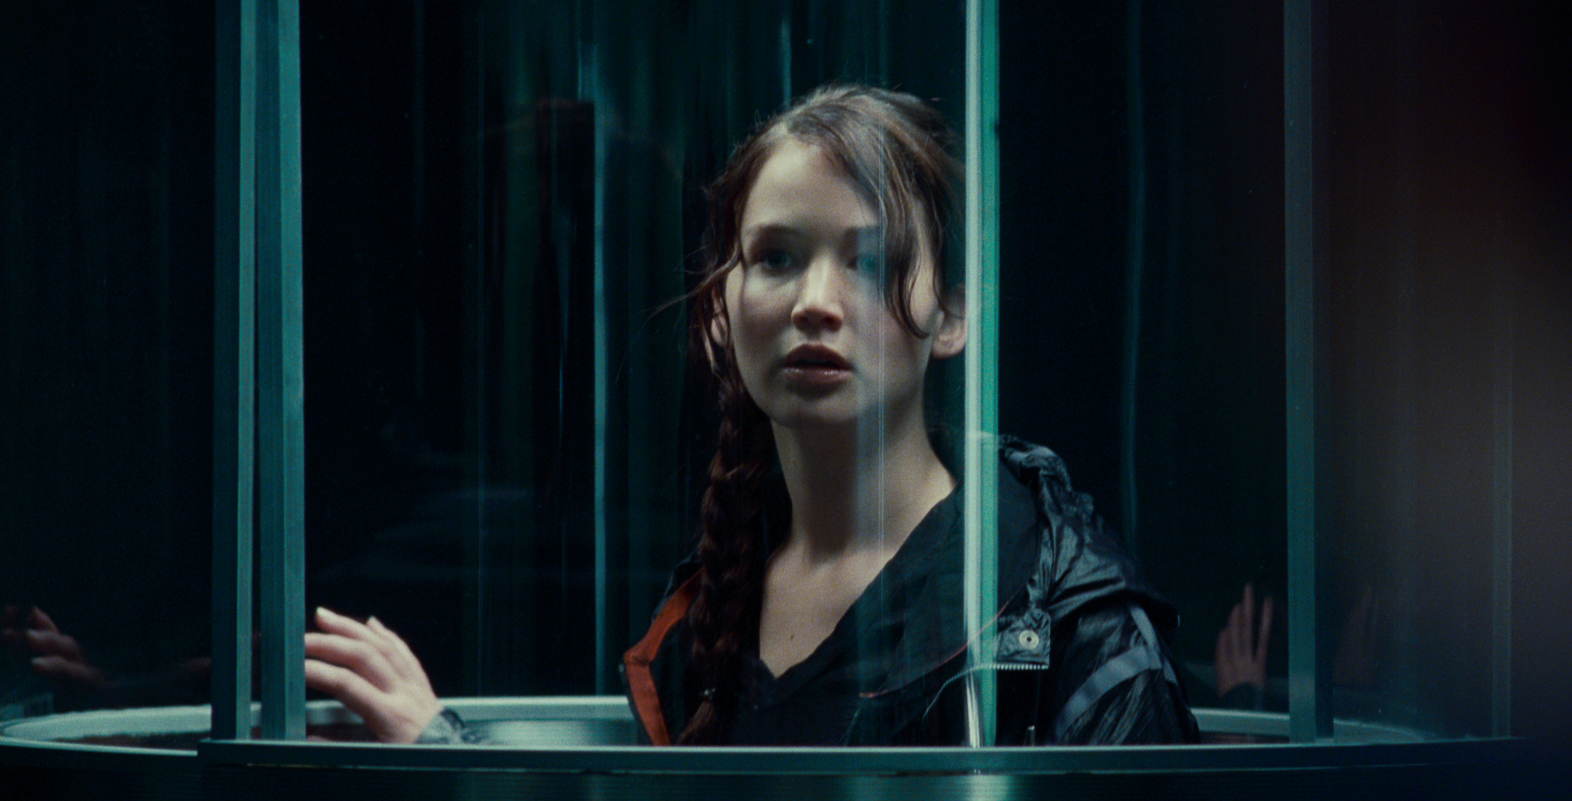 is hunger games 3 out